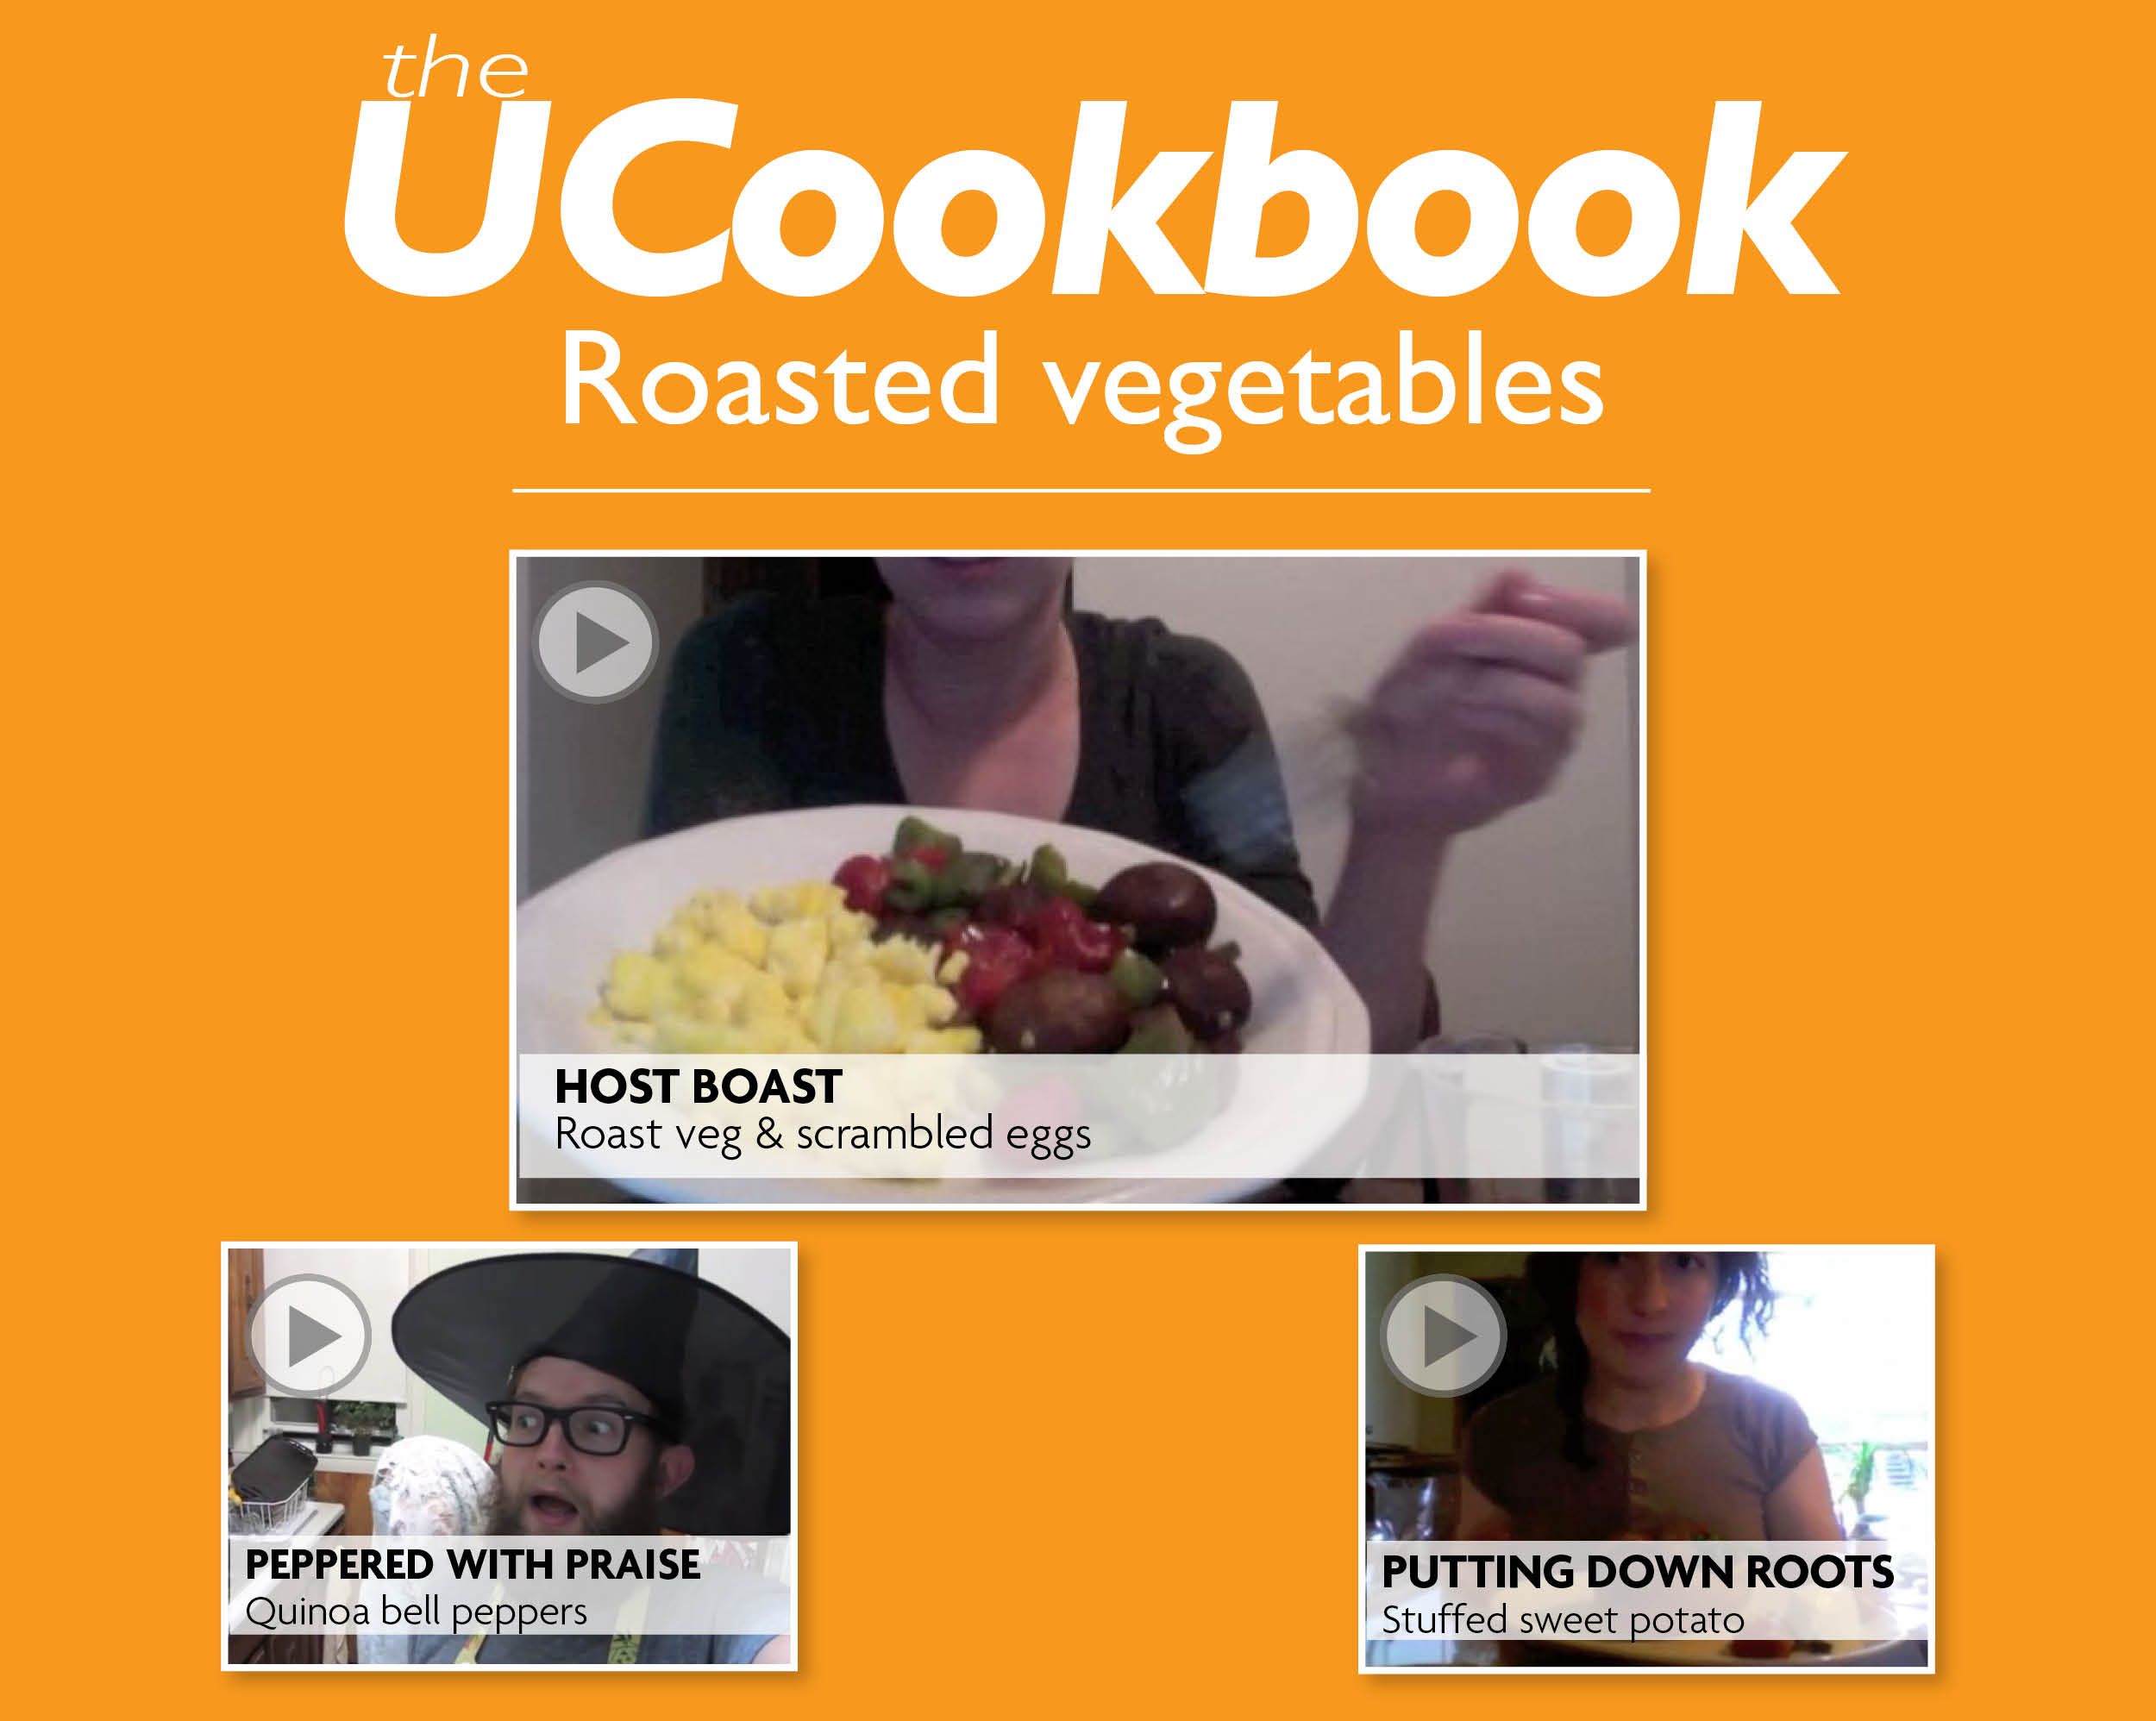 UCookbook: Roasted vegetables